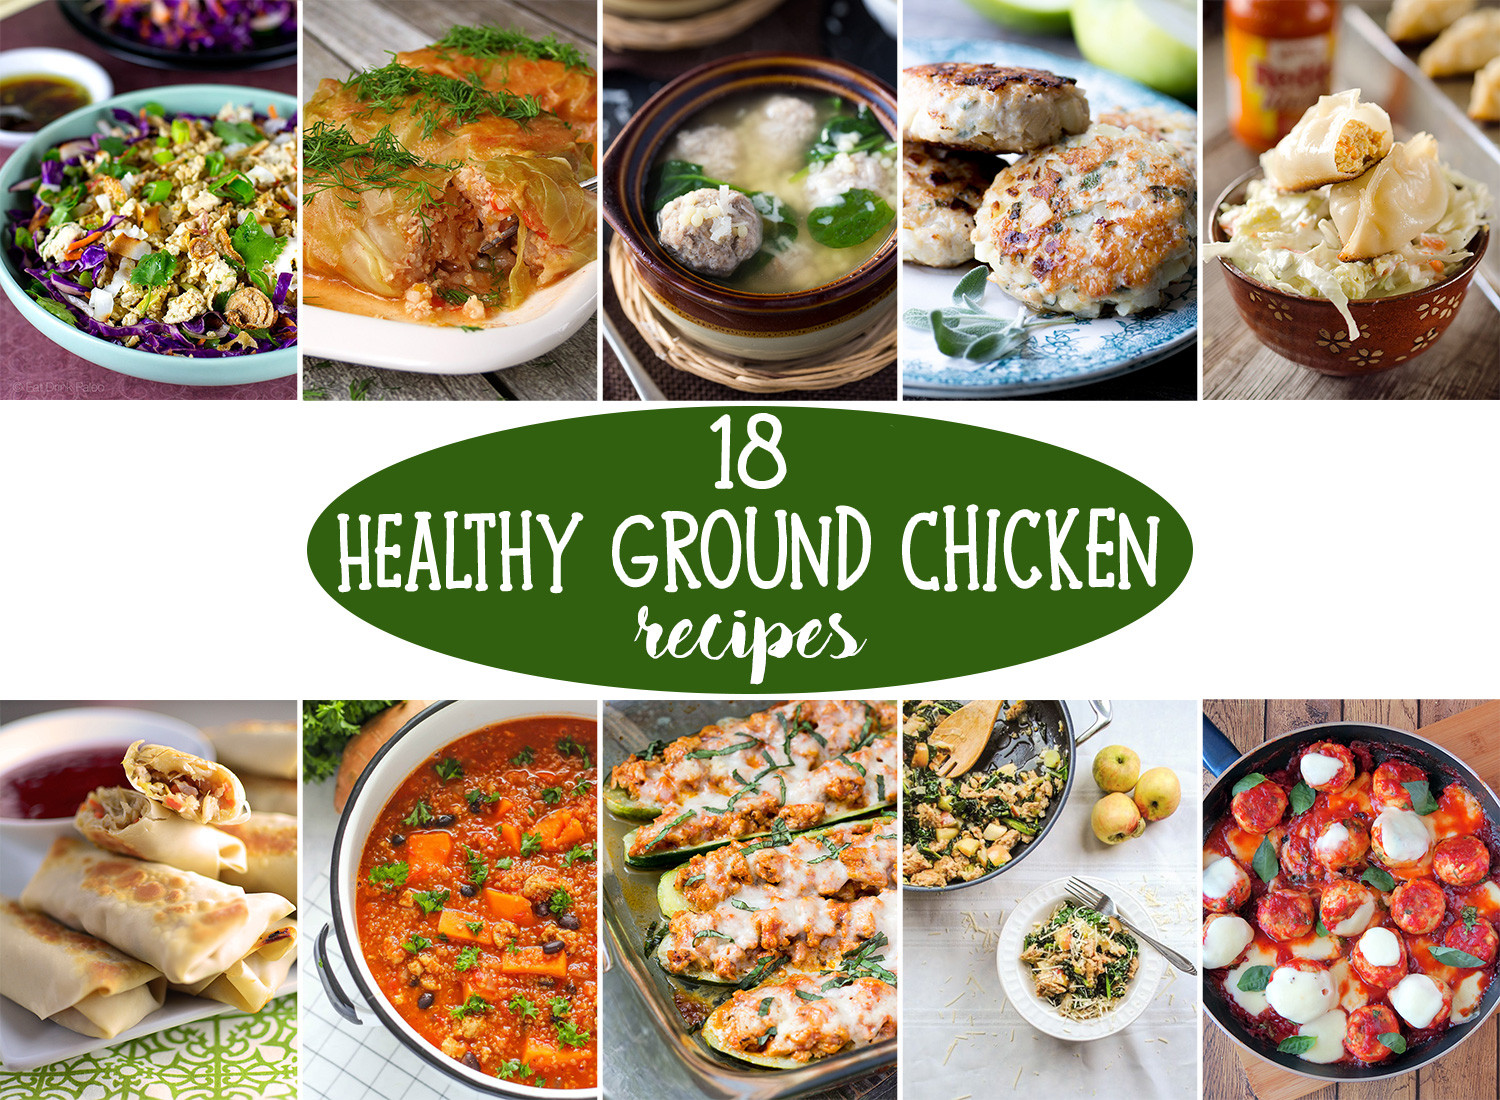 Healthy Ground Chicken Recipes  18 Healthy Ground Chicken Recipes That ll Make You Feel Great